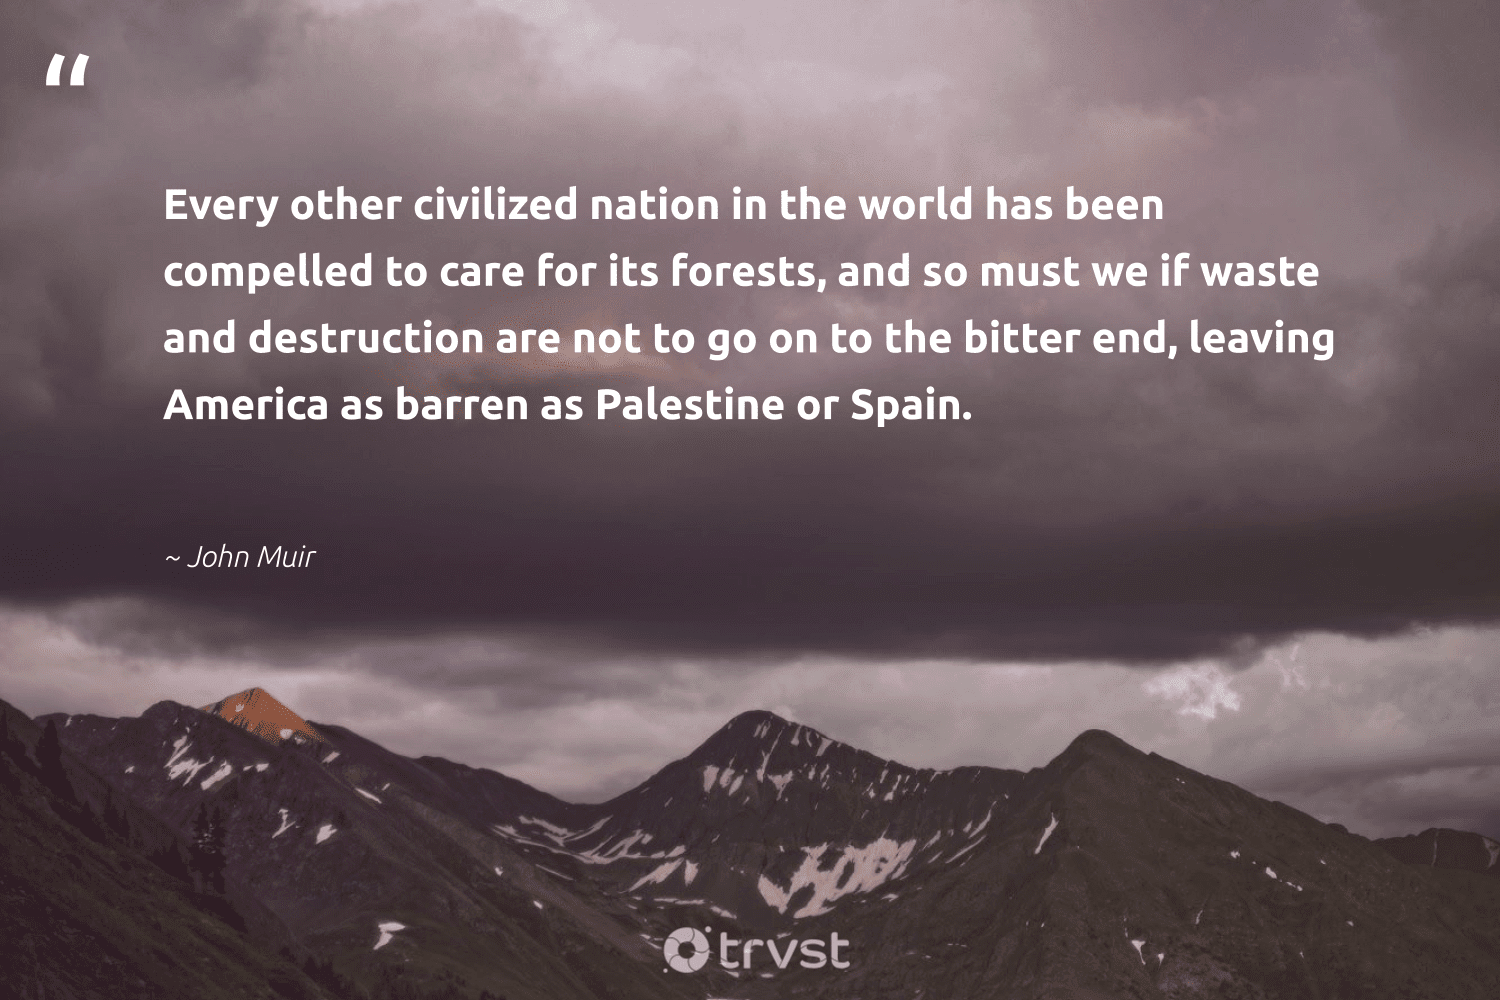 """""""Every other civilized nation in the world has been compelled to care for its forests, and so must we if waste and destruction are not to go on to the bitter end, leaving America as barren as Palestine or Spain.""""  - John Muir #trvst #quotes #waste #sustainability #dogood #wildernessnation #collectiveaction #noplanetb #beinspired #natureseekers #bethechange #green"""